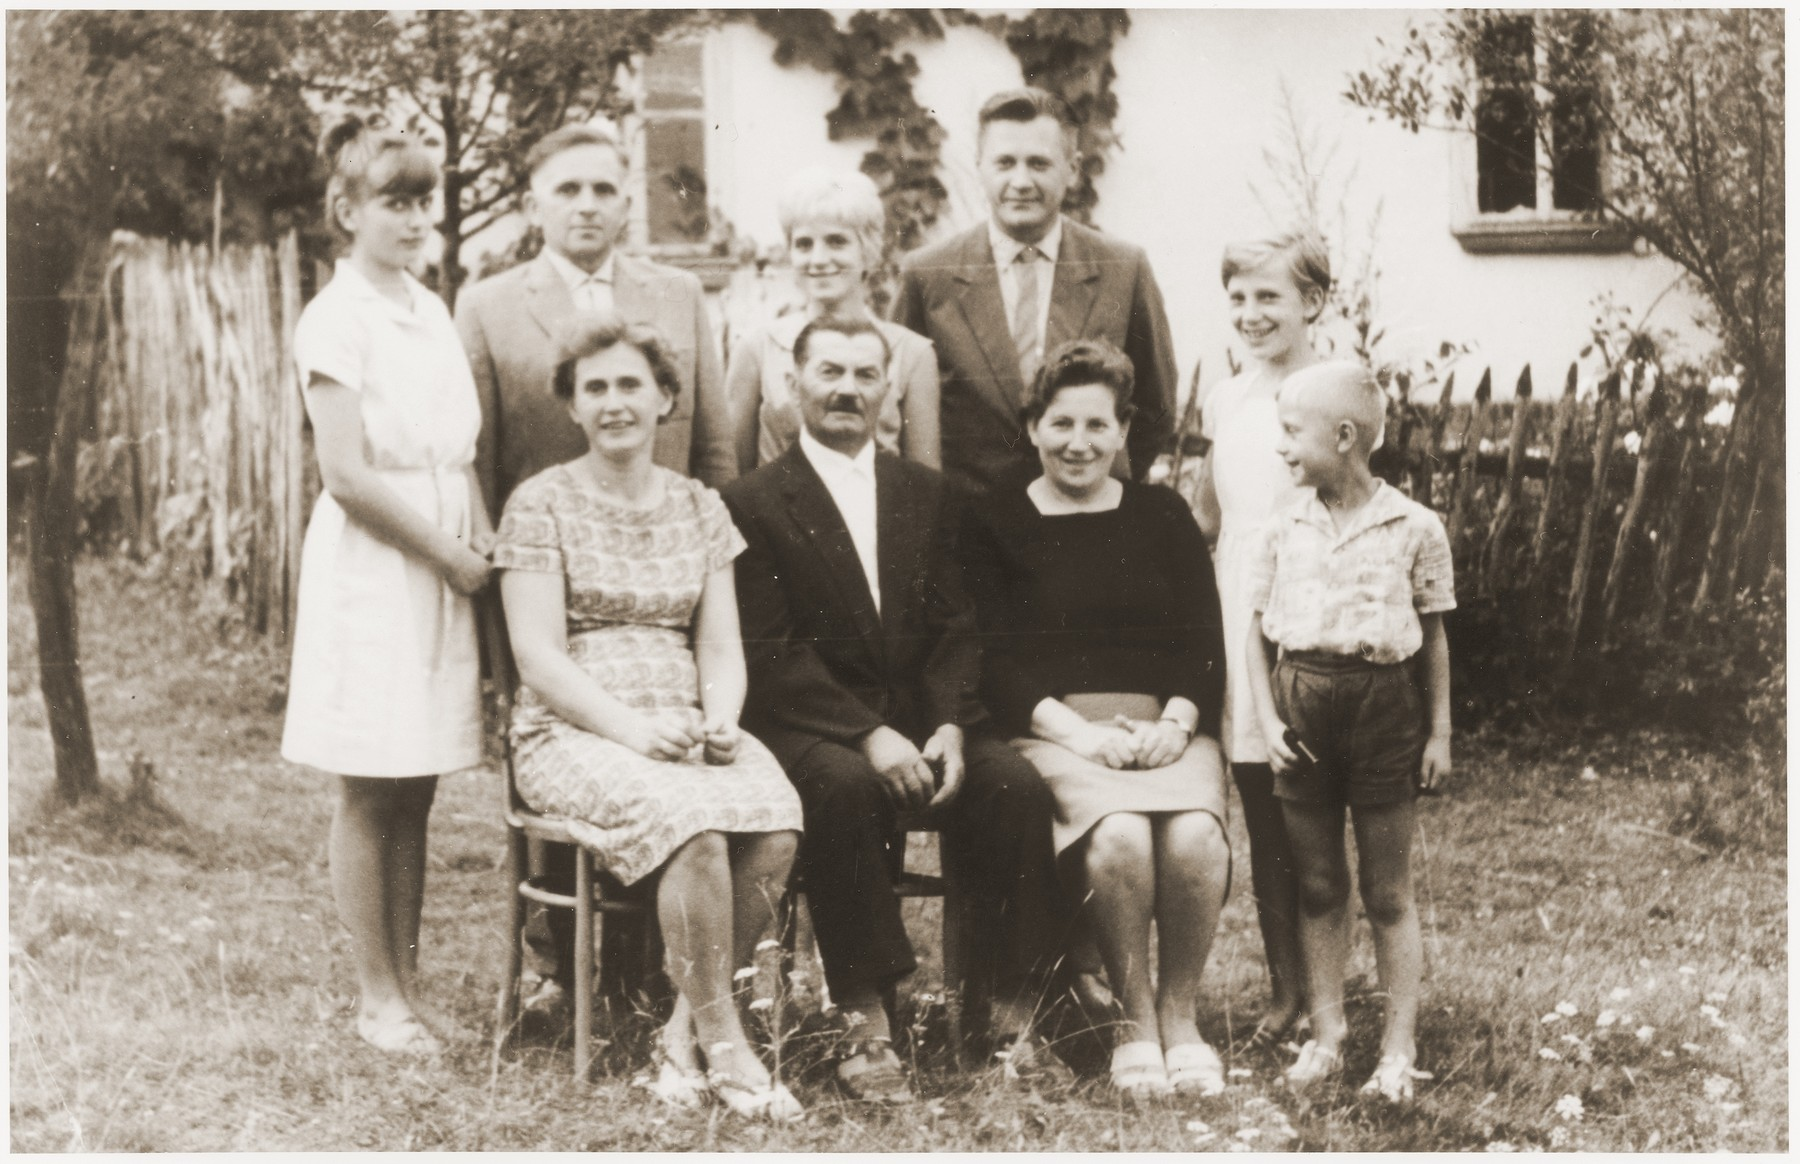 Group portrait of members of the Lacny family who hid Sala Schoen during the German occupation of Poland.